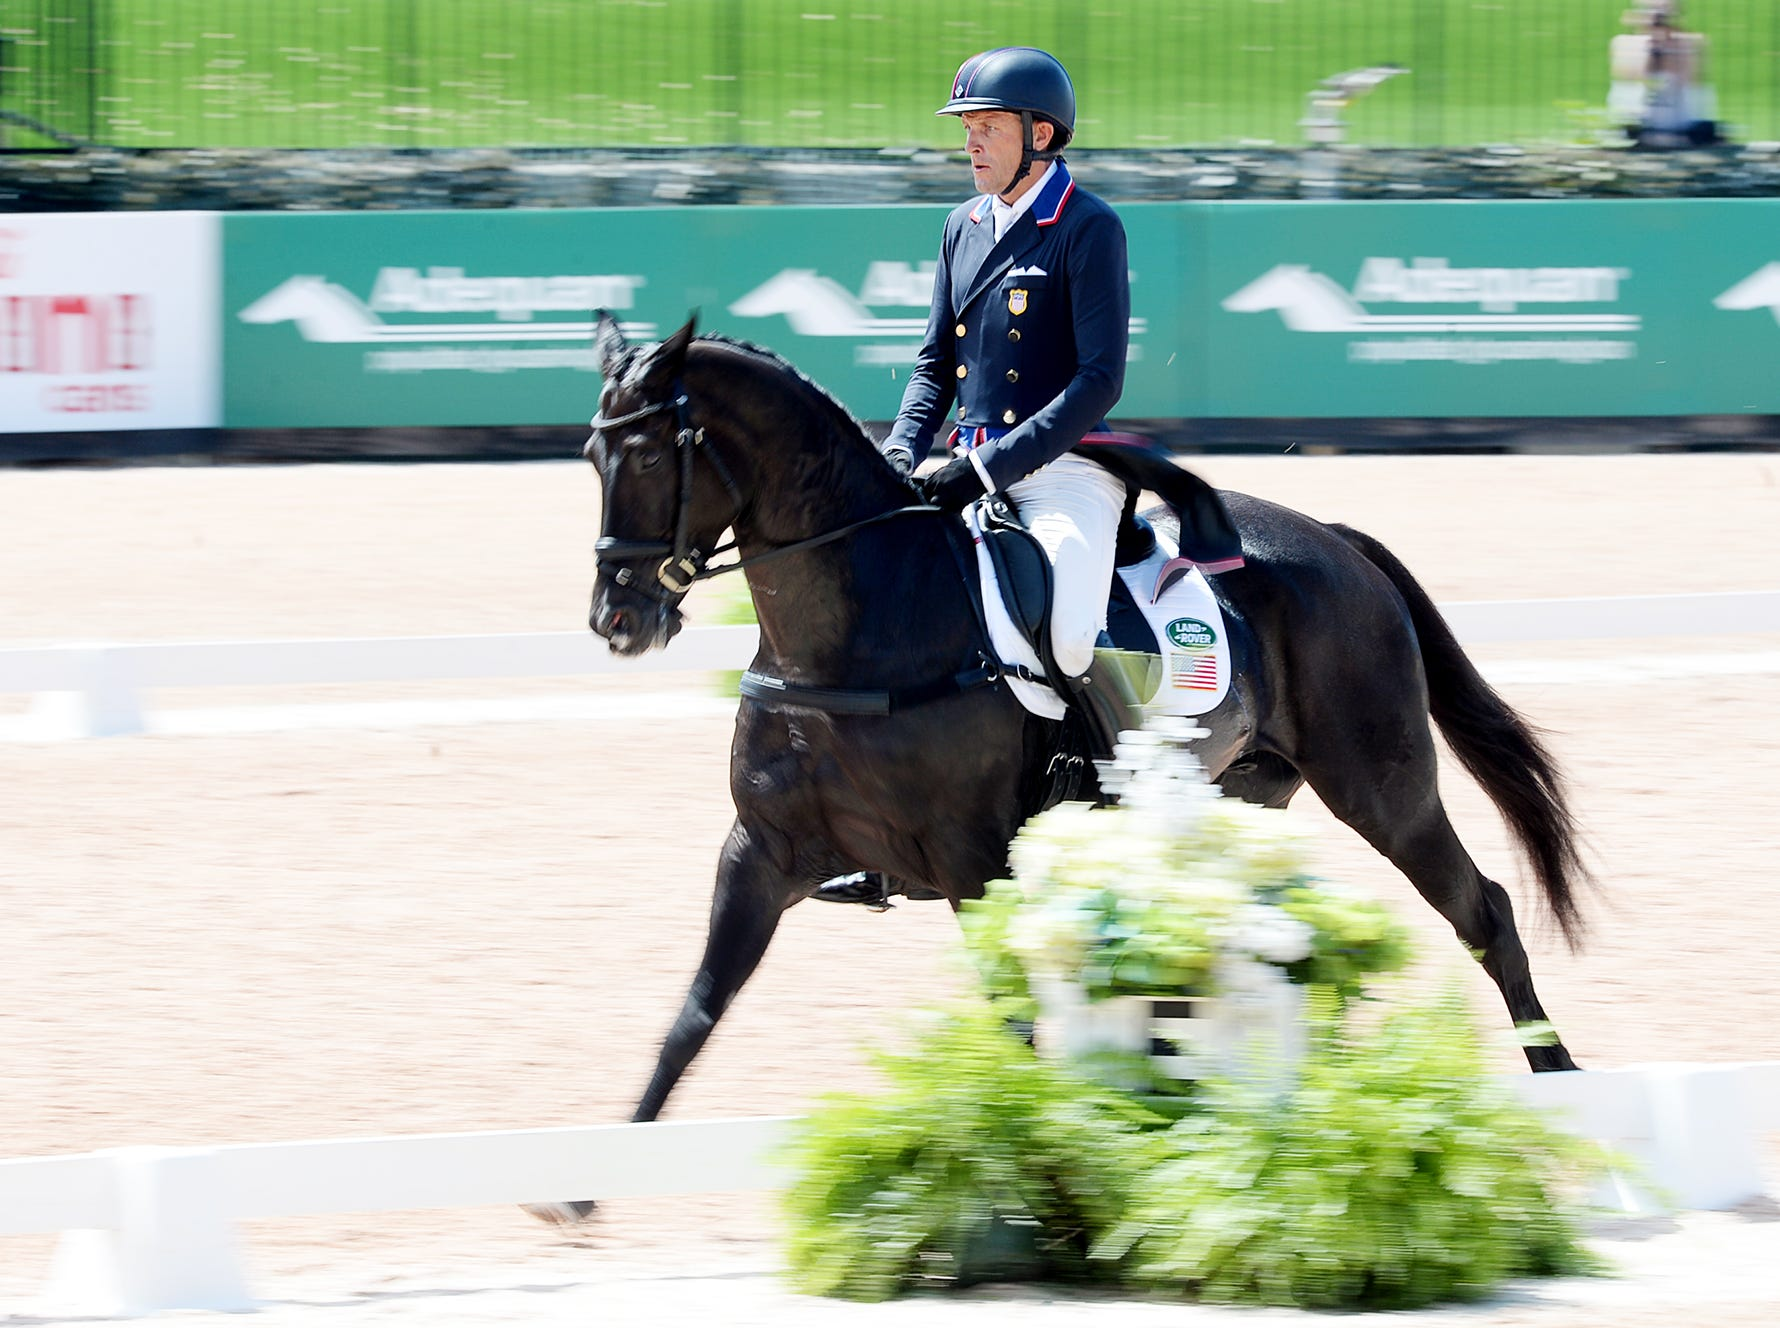 Boyd Martin rides Tsetserleg as he competes for the United States in the dressage portion of the eventing competition at the World Equestrian Games in Tryon Sept. 13, 2018.